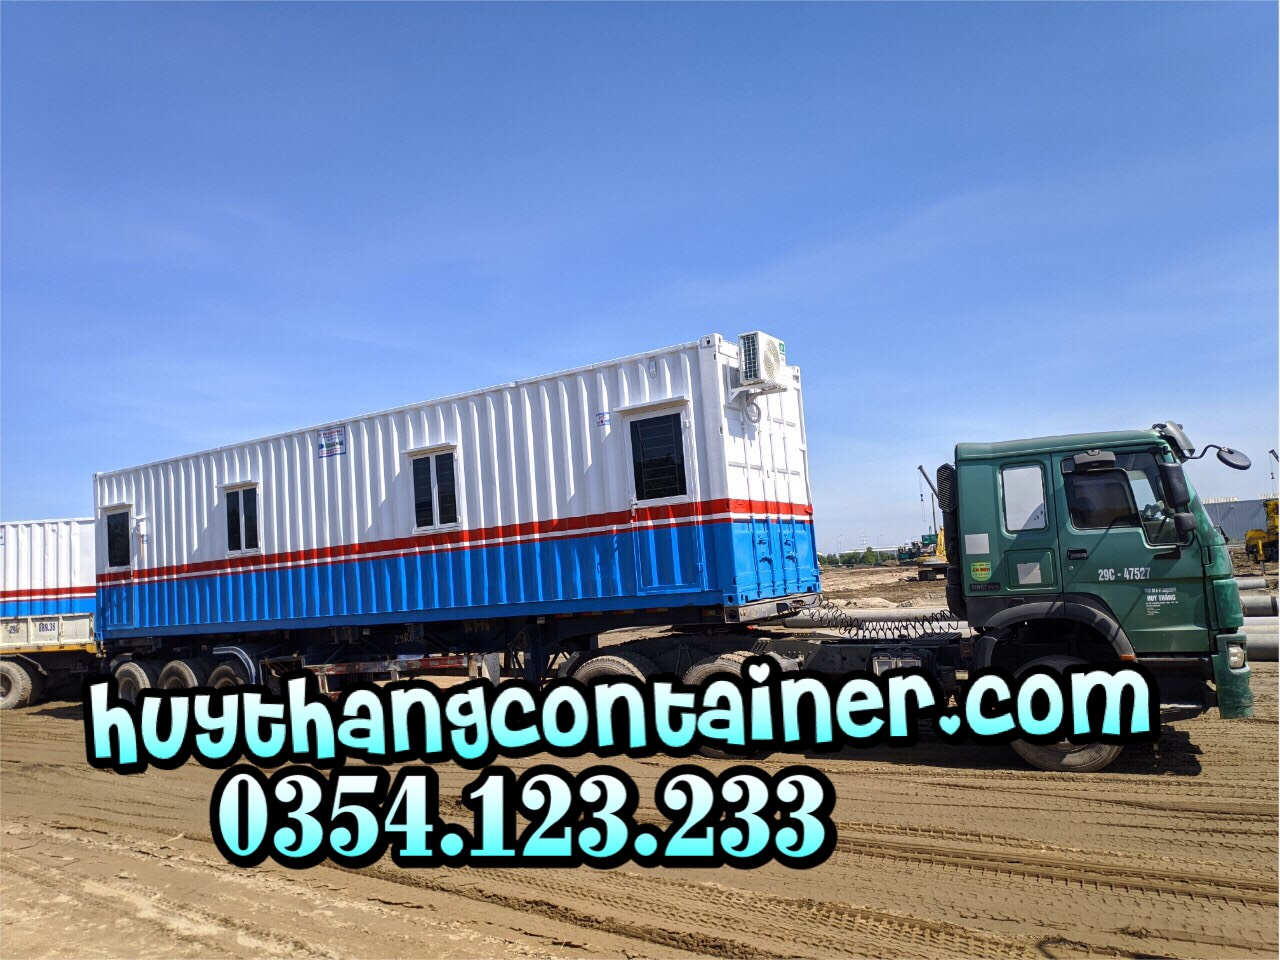 Huy Thắng Container